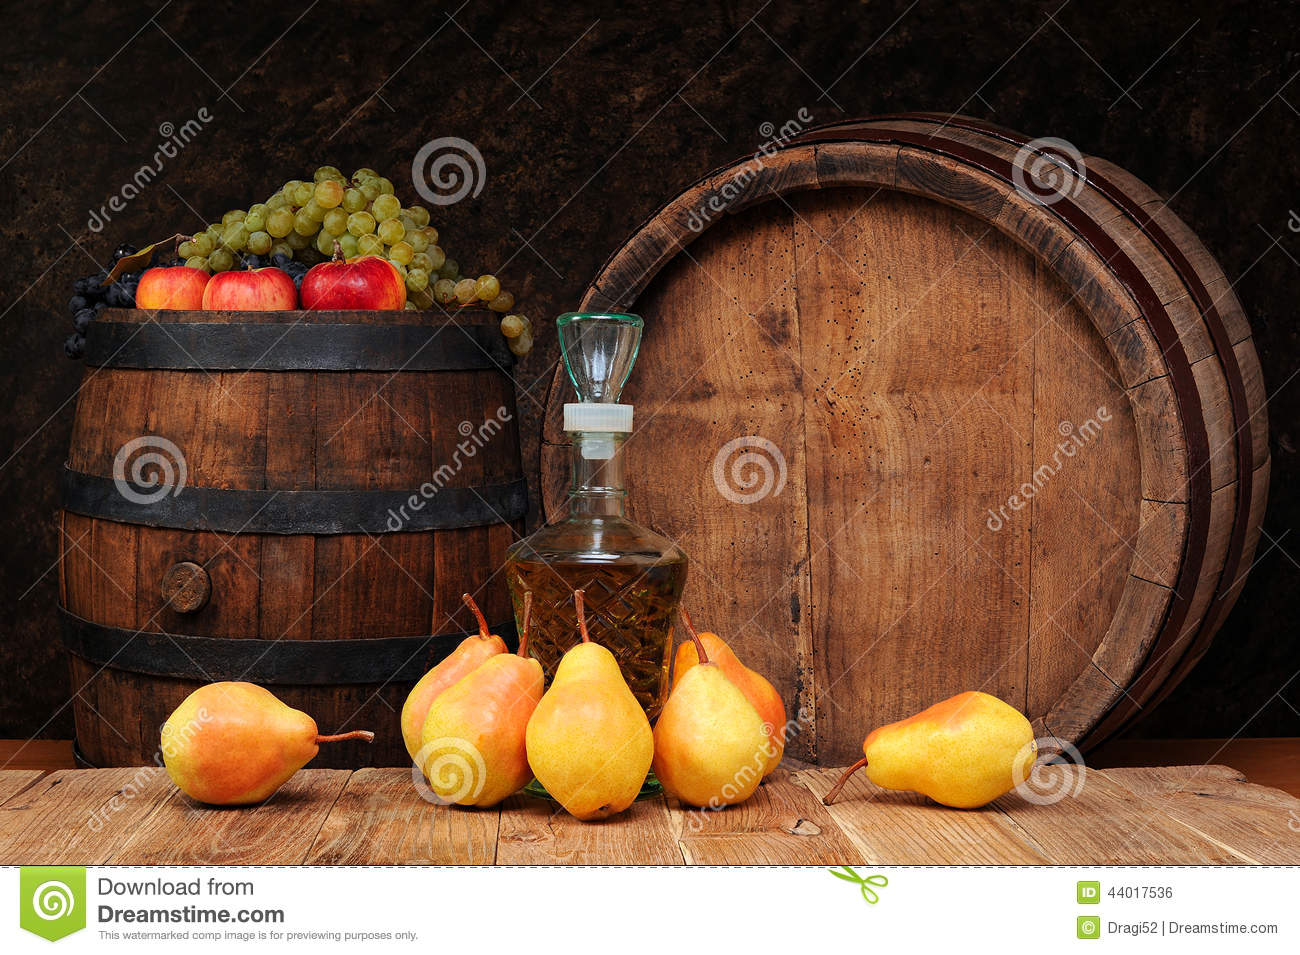 Pears, wooden barrel and the brandy bottle